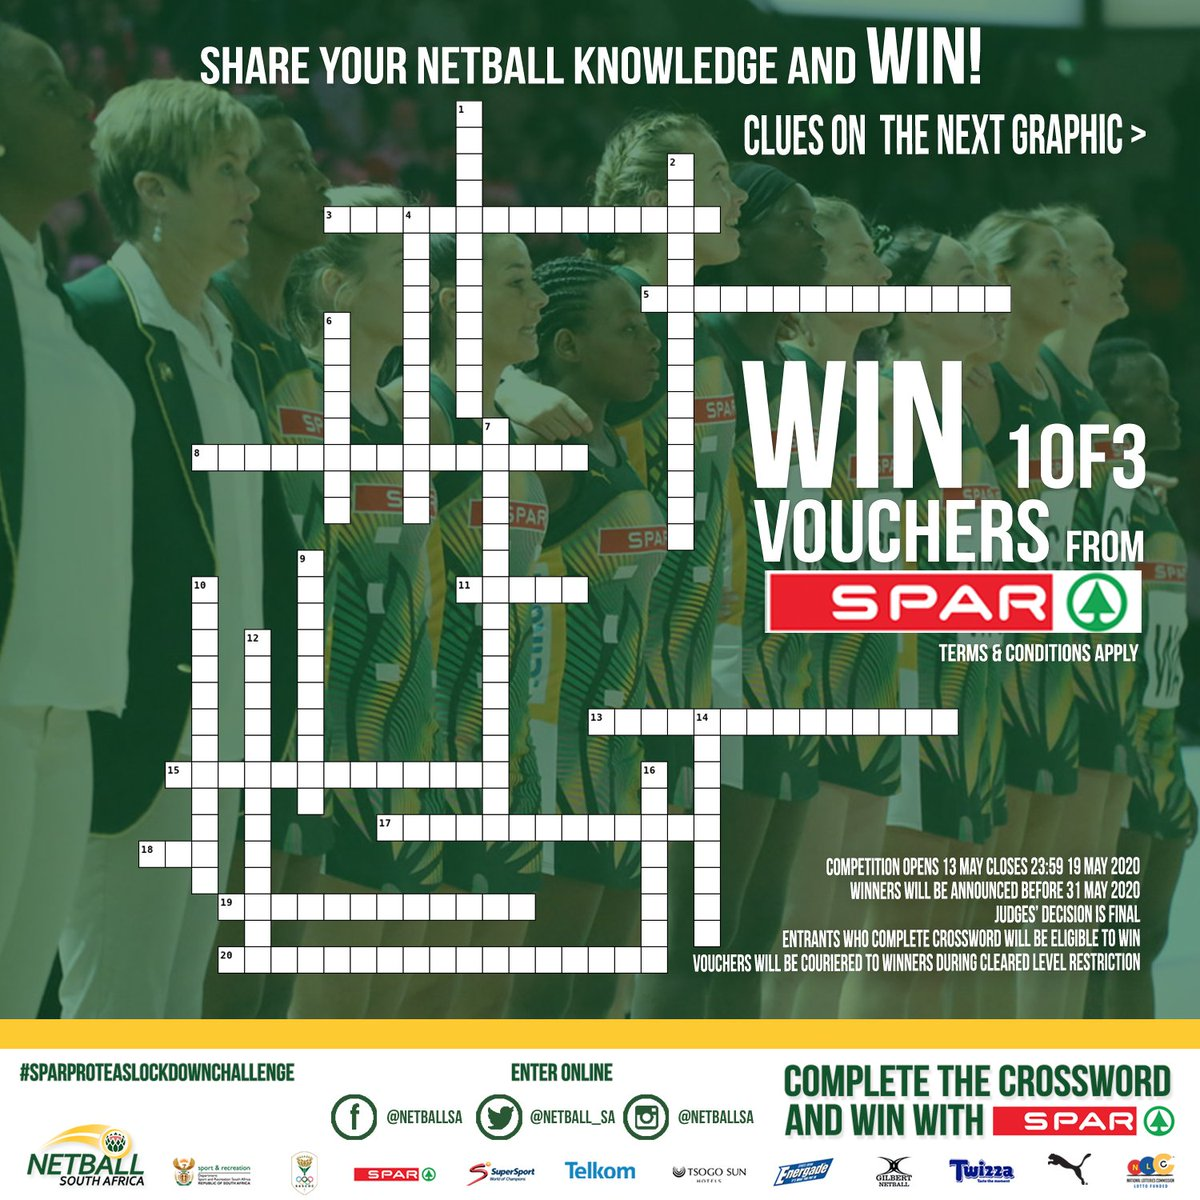 Netball South Africa On Twitter Win Win Win 1of3 Vouchers From My Spar In Our Crossword Puzzle Competition Here S What You Have To Do Like Rt Complete The Crossword